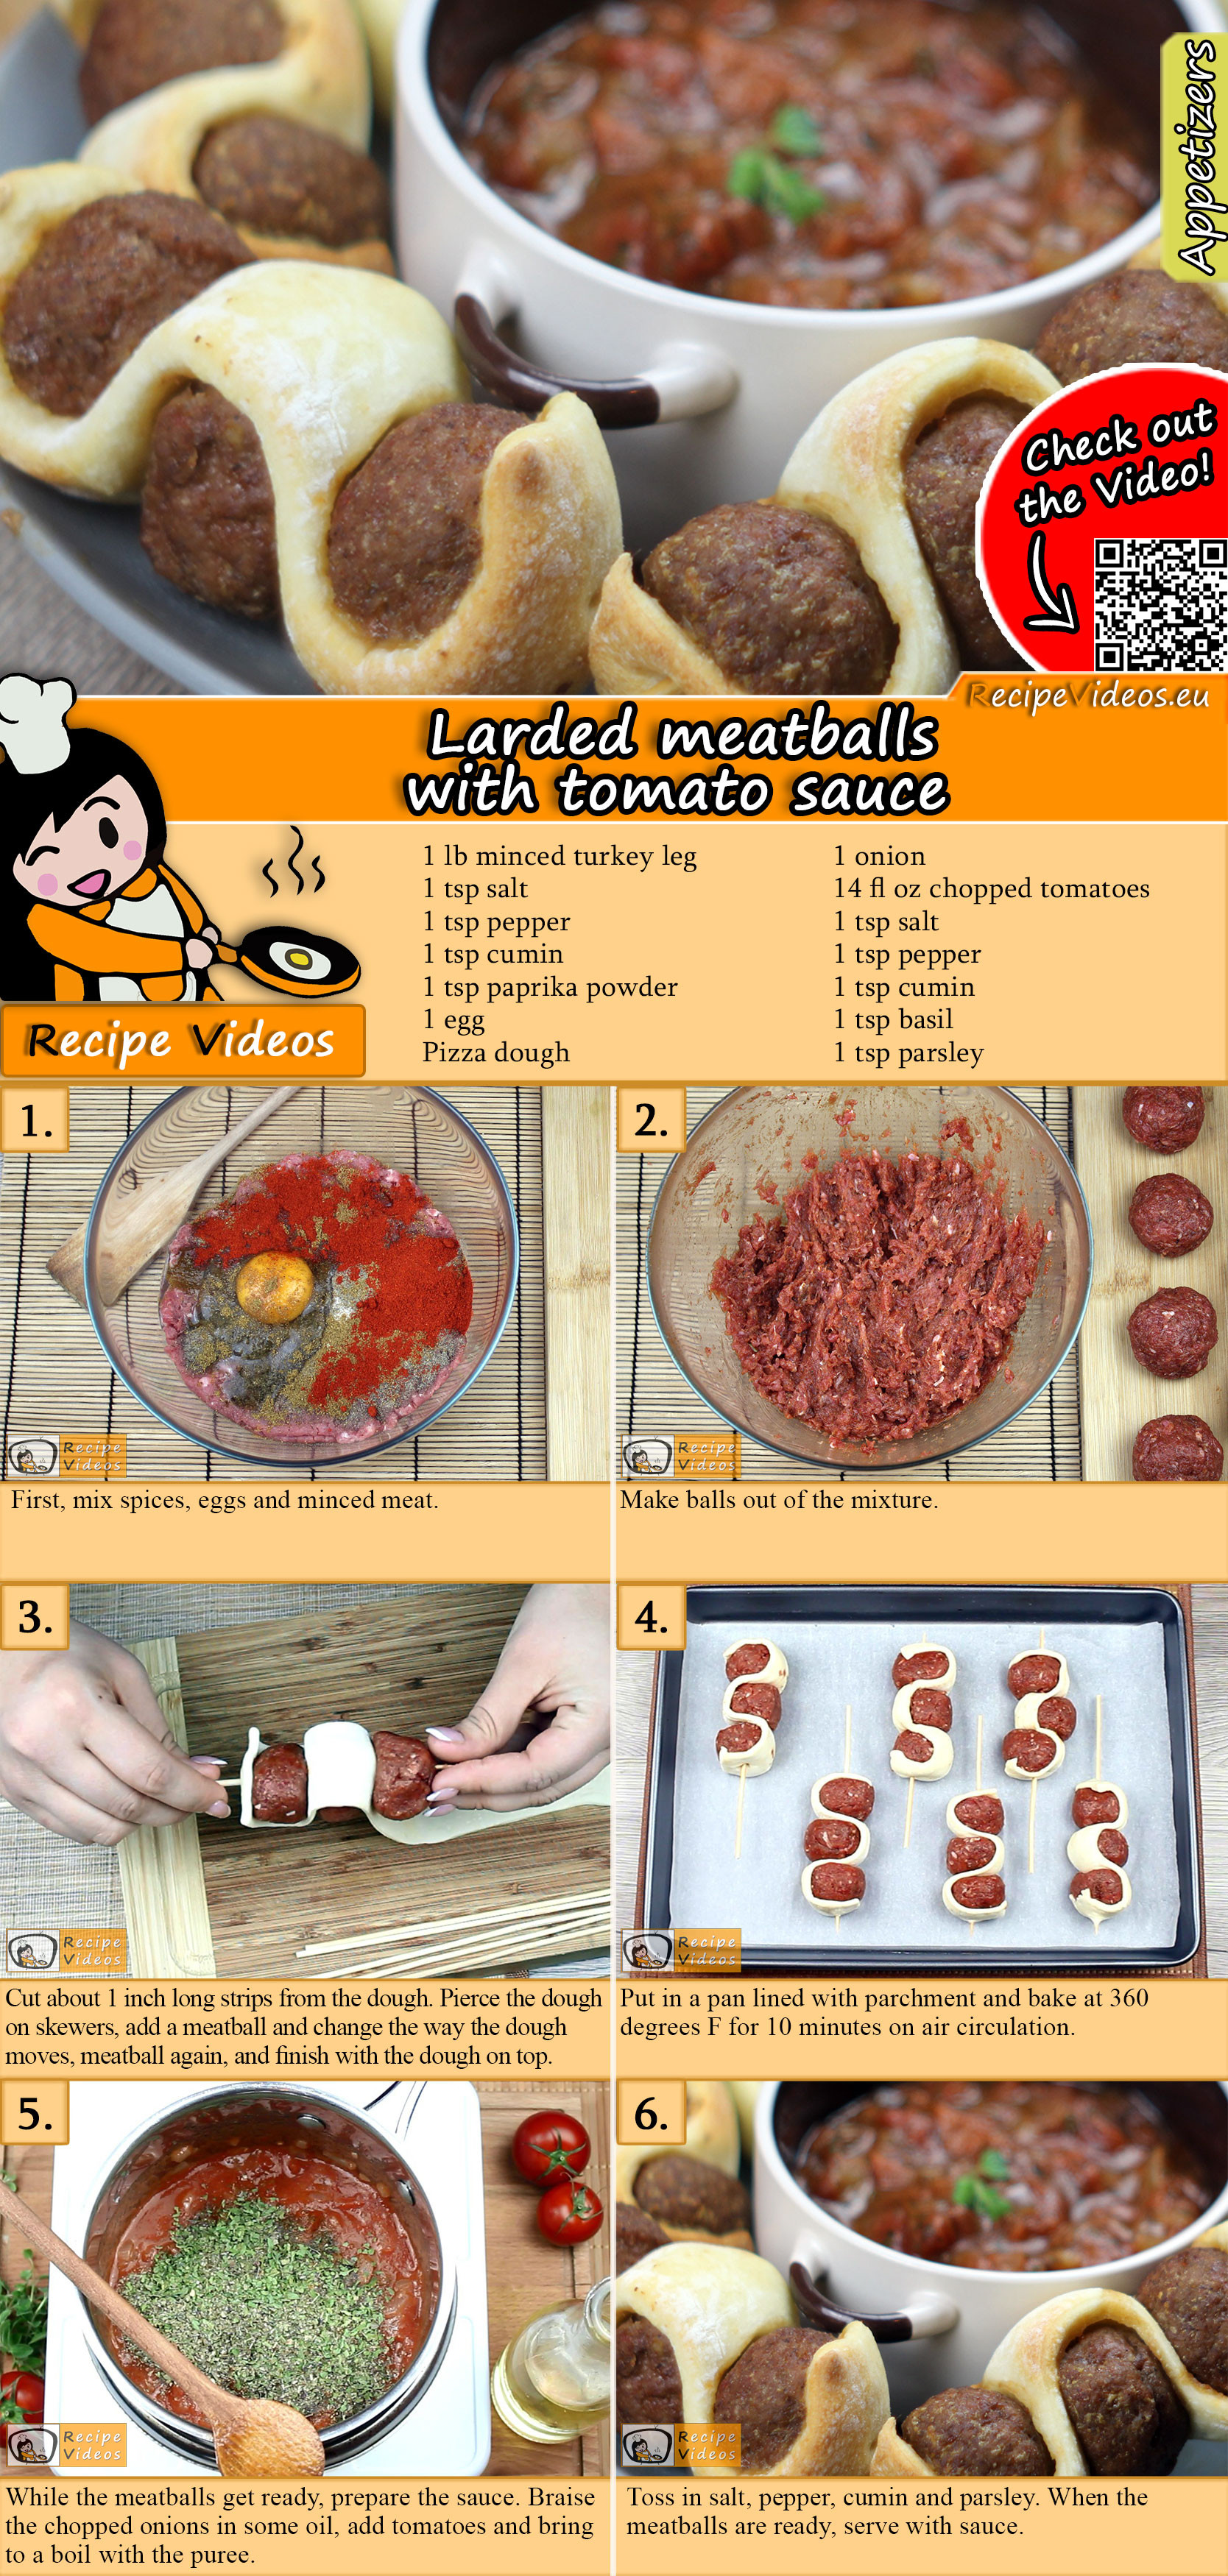 Larded meatballs with tomato sauce recipe with video